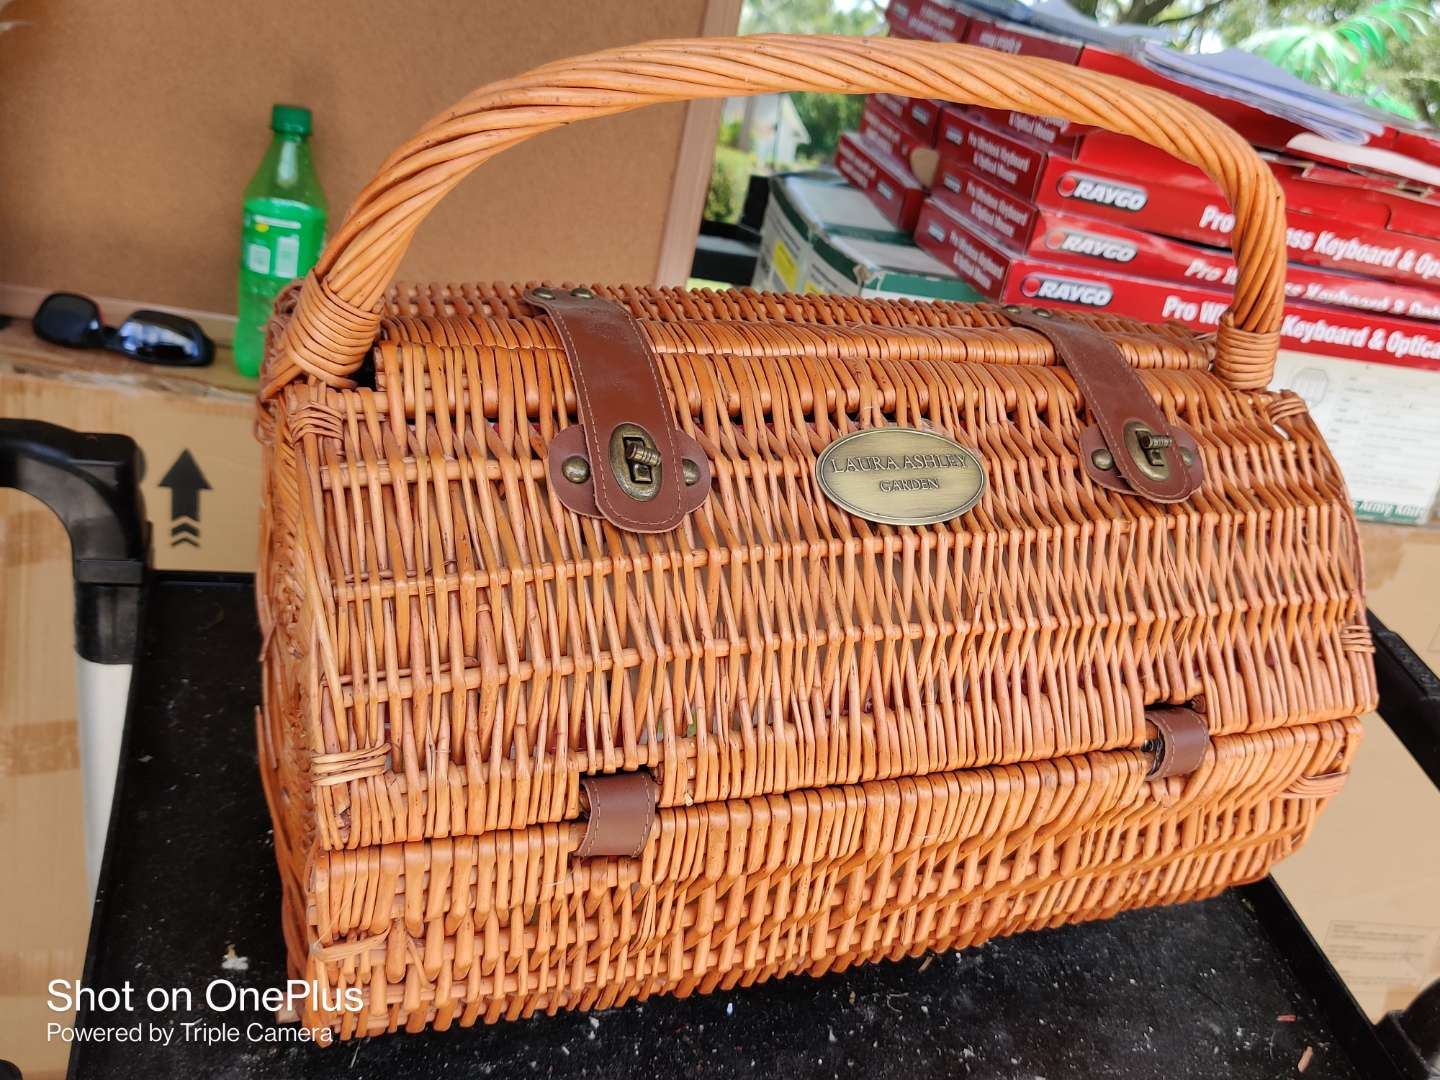 547 Laura Ashley picnic basket stainless flatware very nice